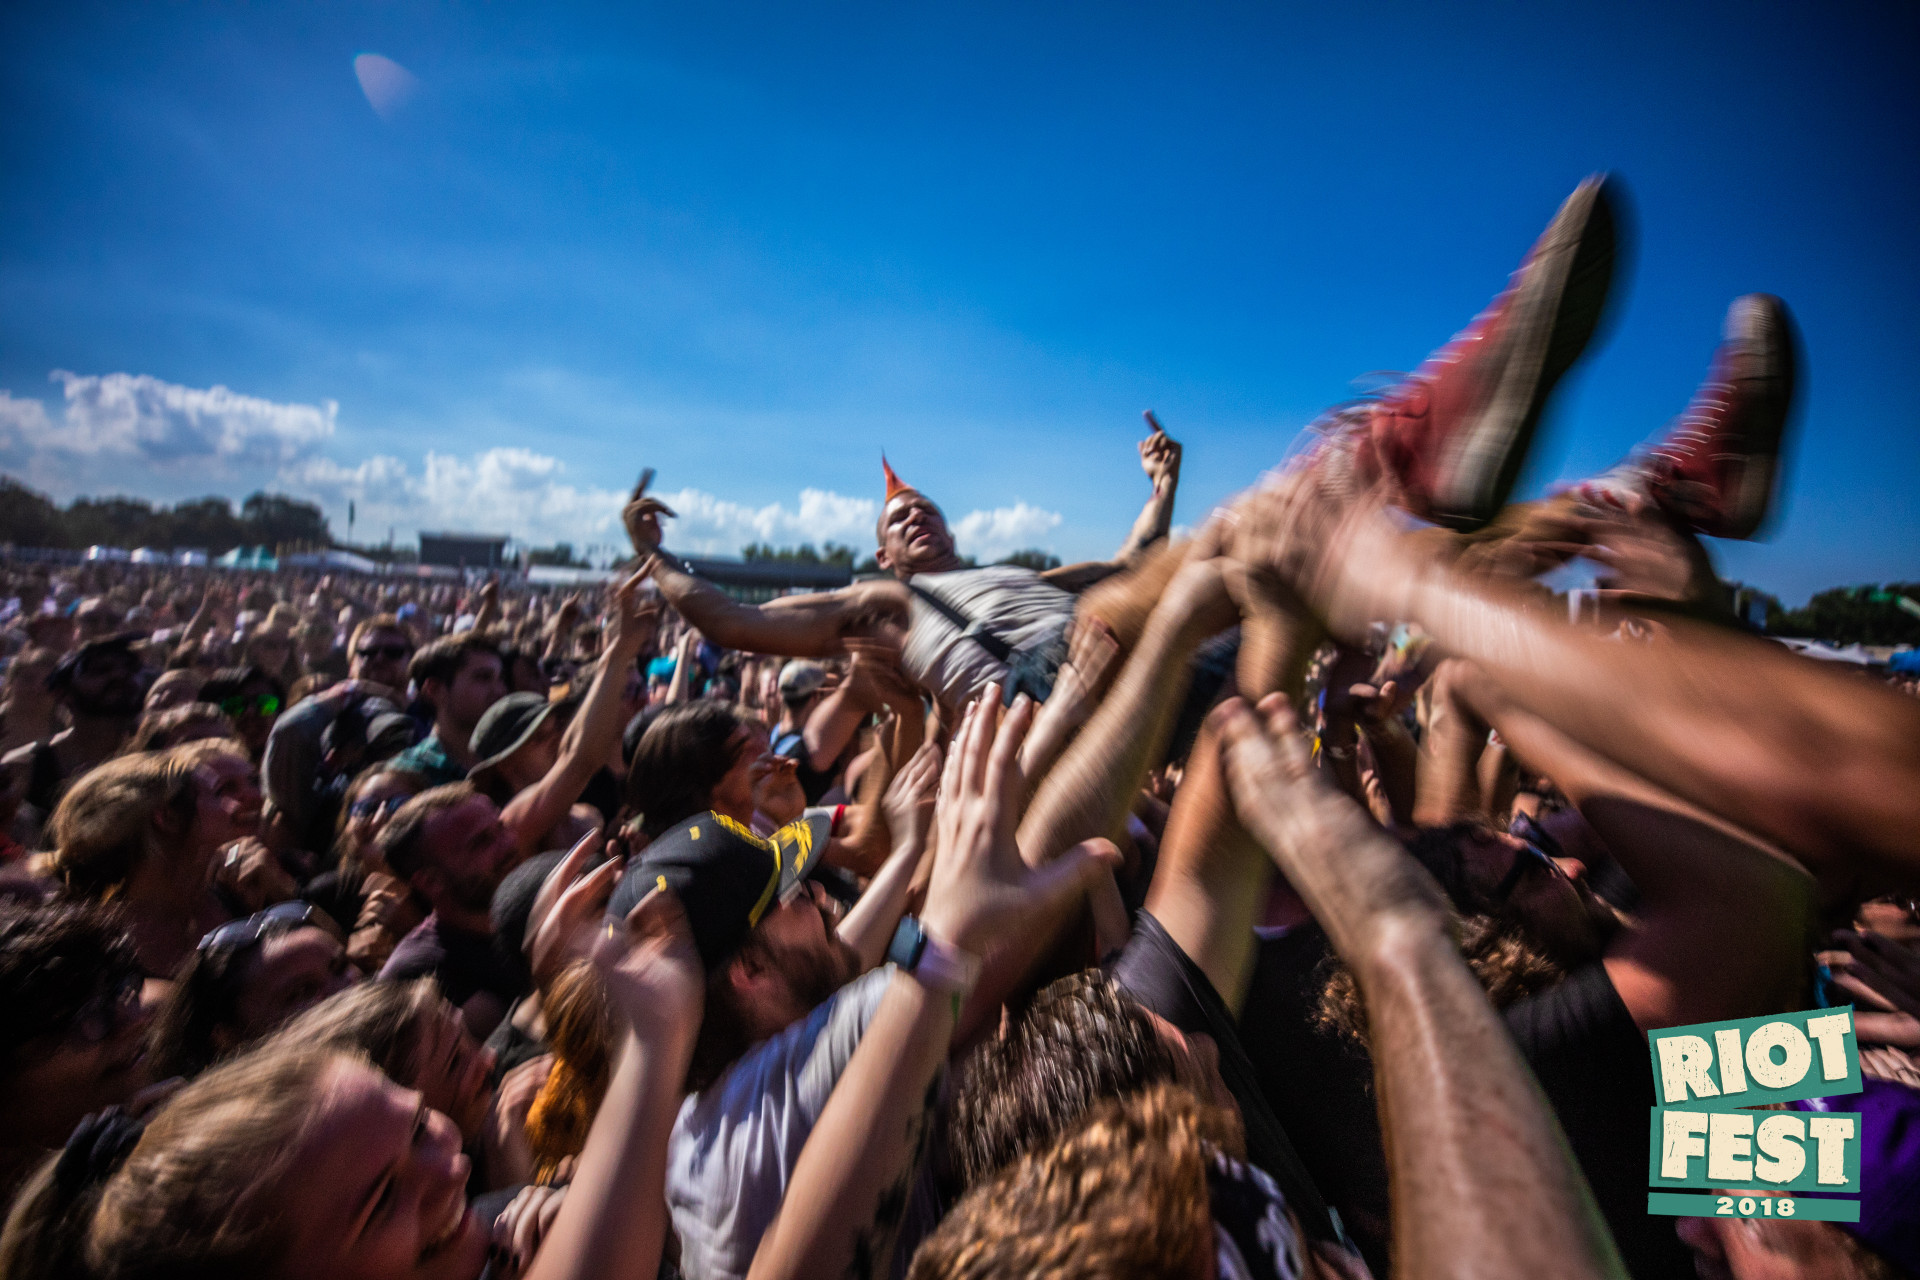 girl-crowd-surfing-video-naked